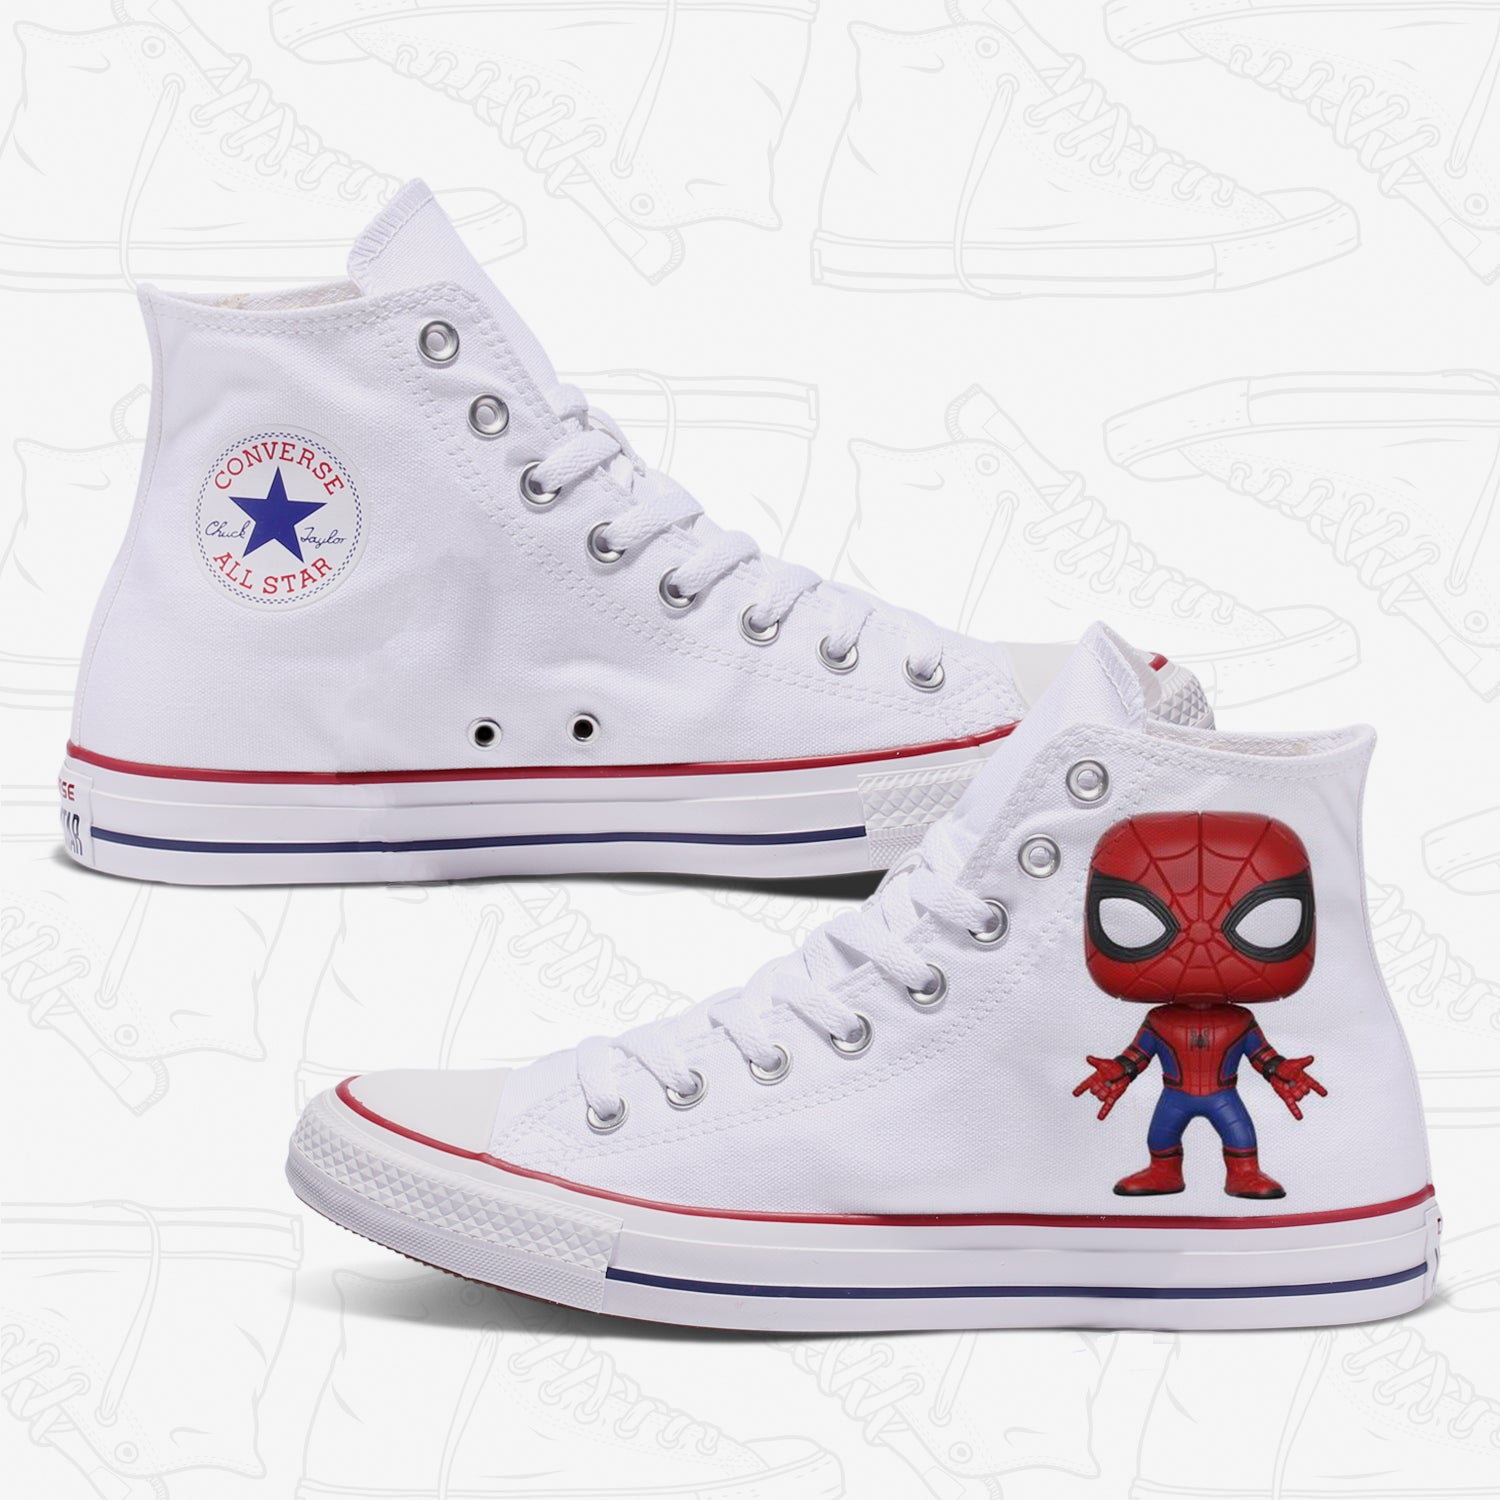 Spider Man Custom Converse White